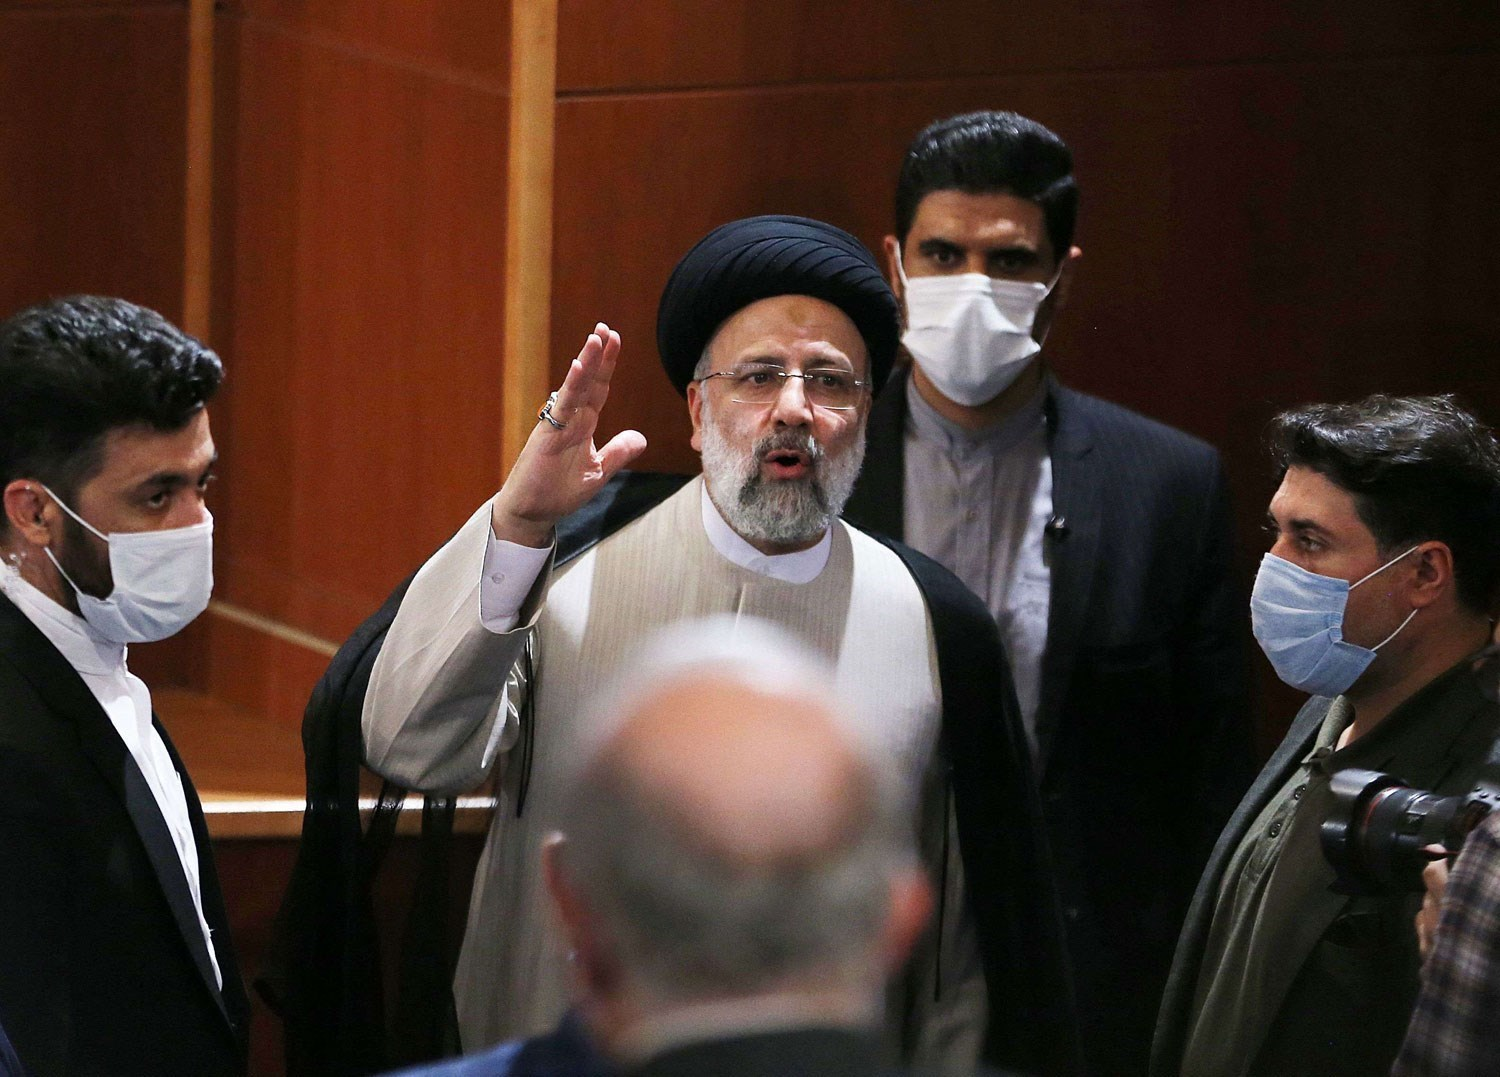 Raisi: The electoral competition has ended.. the stage of cooperation and work to solve the people's problems has begun.